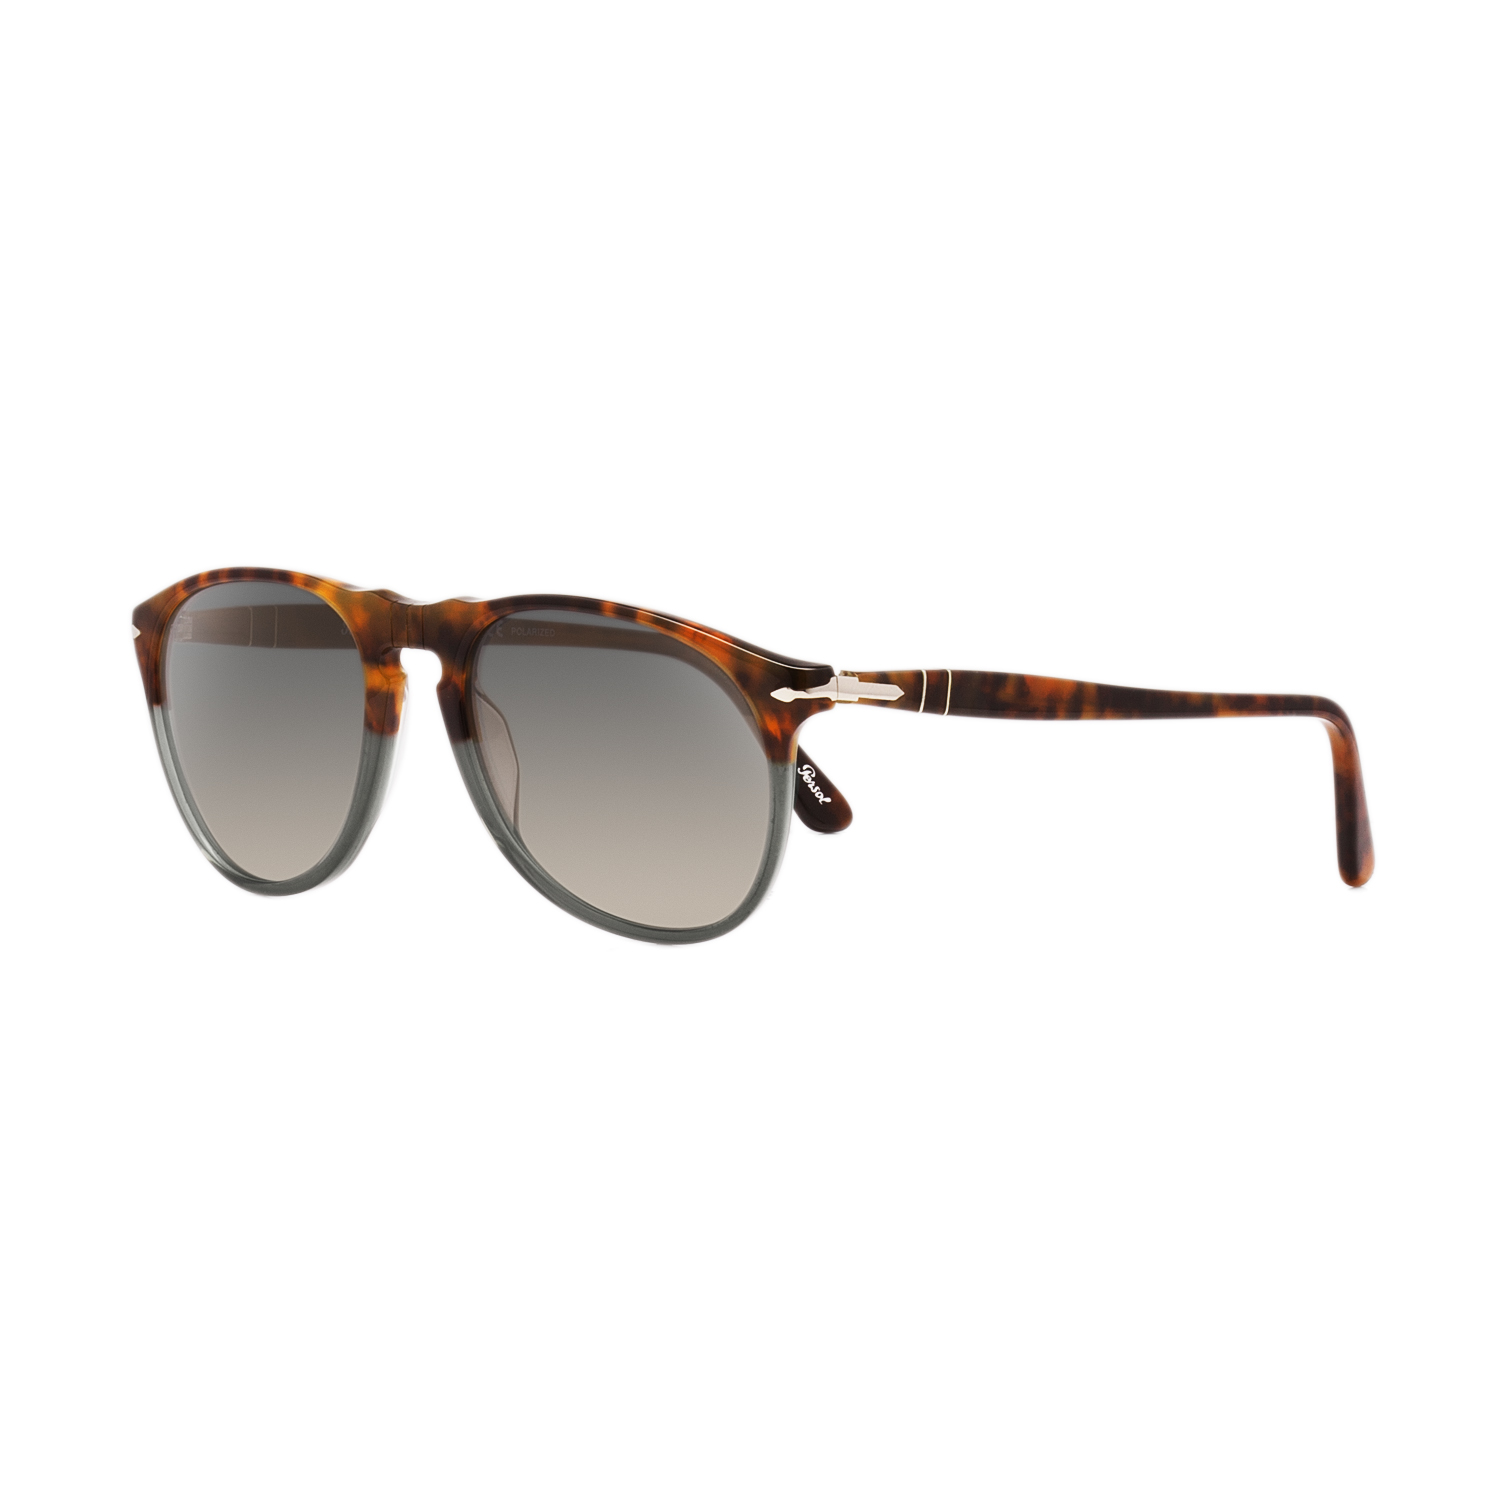 0262a89413 Details about Persol 9649 Aviator Sunglasses 1023 M3 Fuoco e Ardesia    Polar Grey Faded 52mm